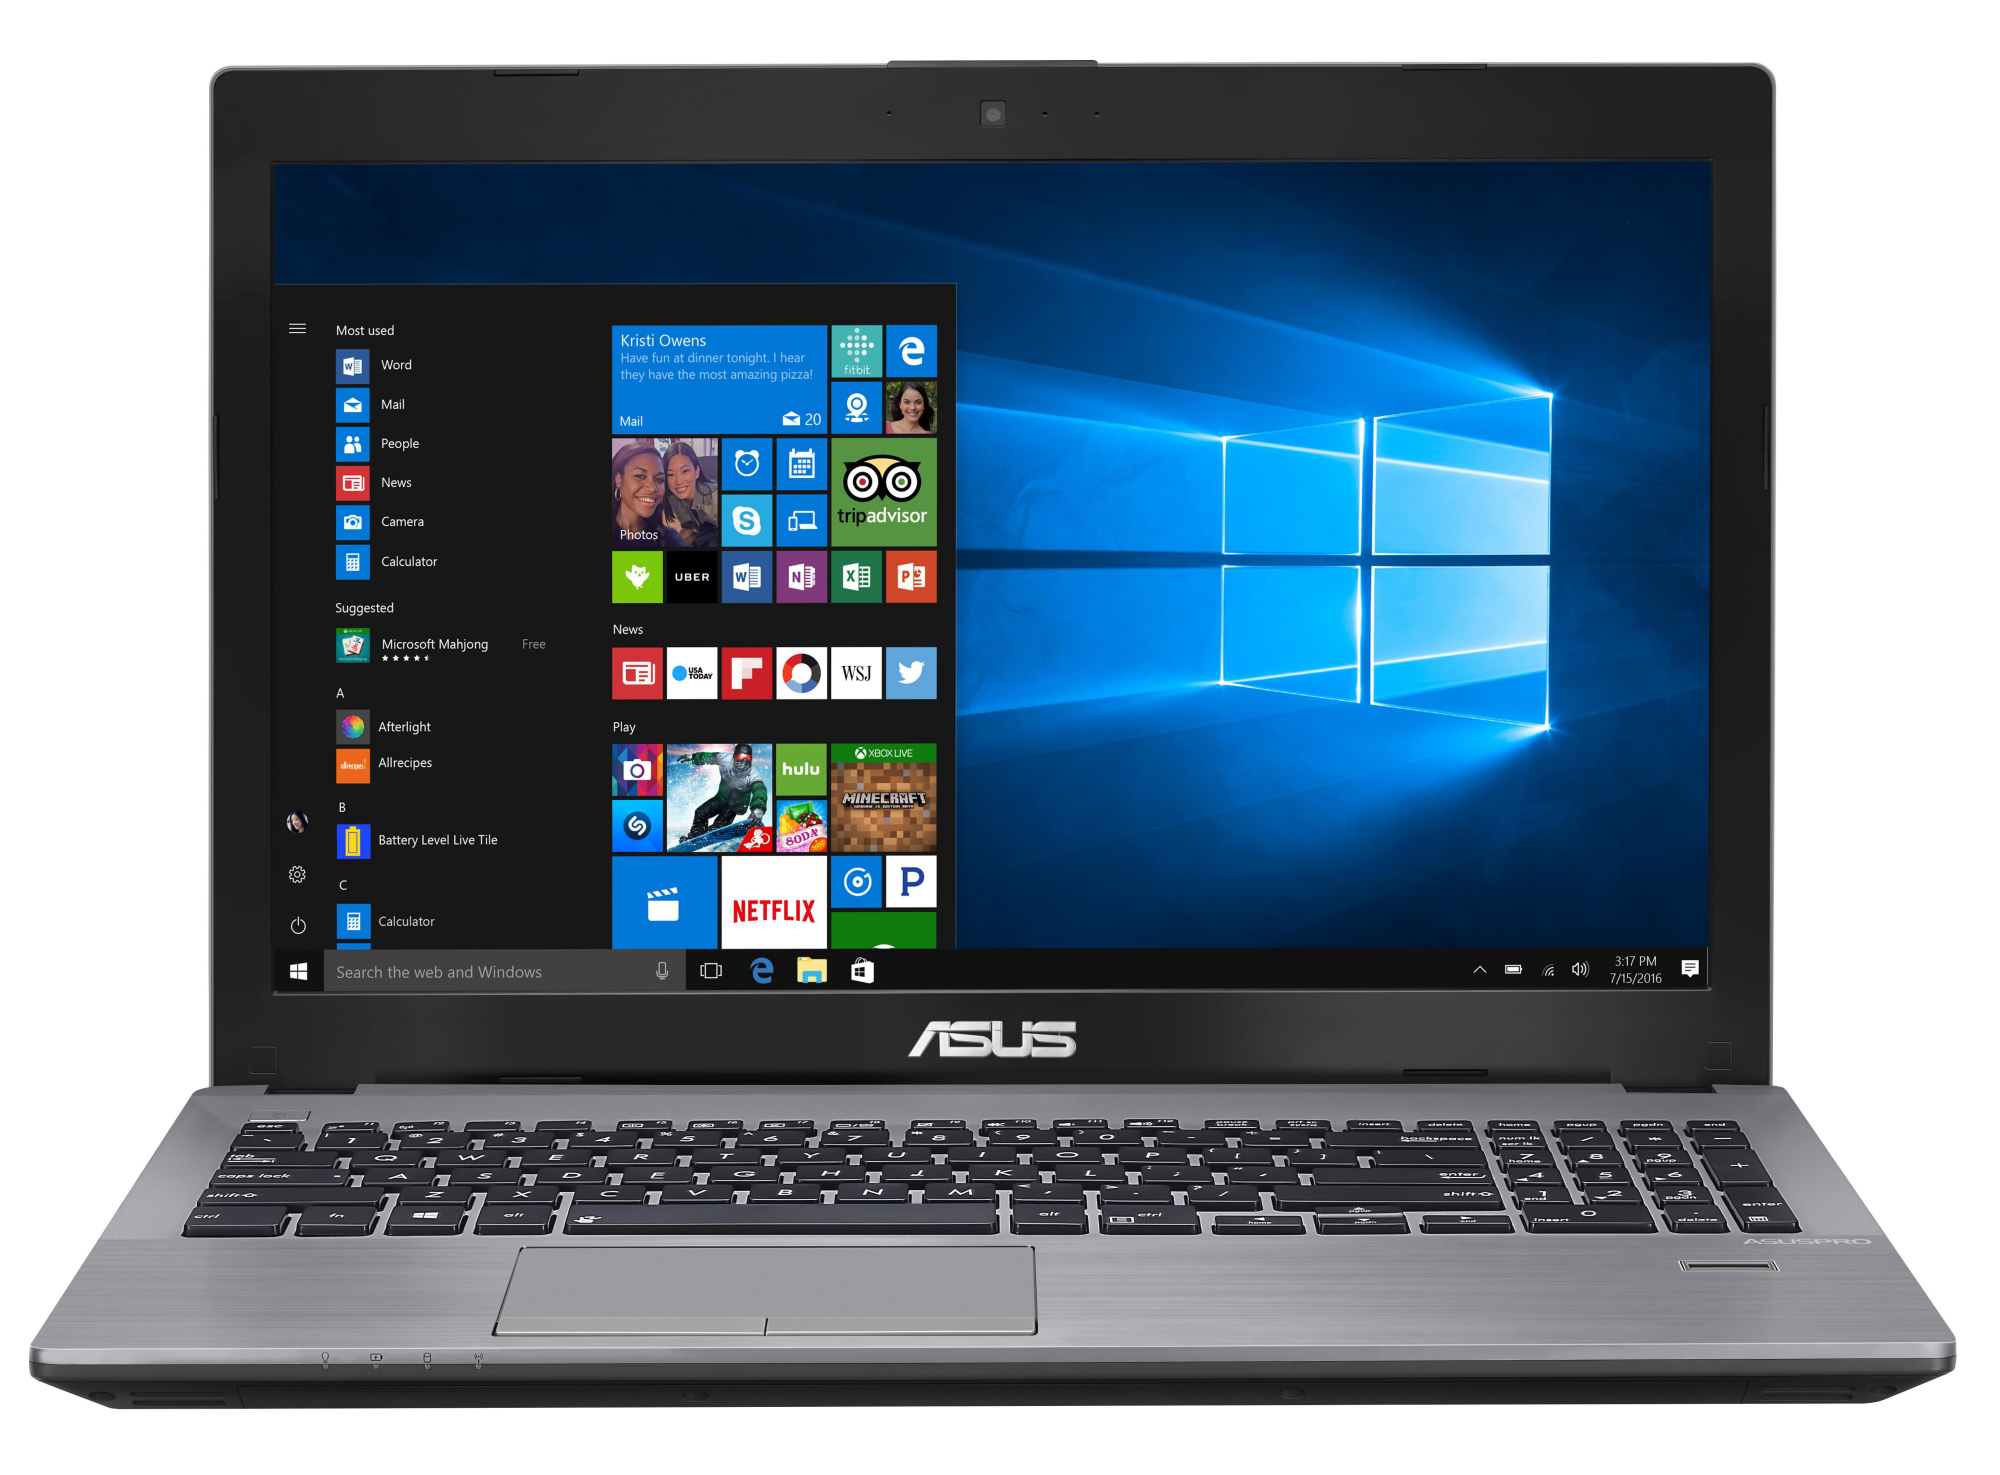 ASUS B53S NOTEBOOK POWER RECOVER WINDOWS 10 DRIVER DOWNLOAD